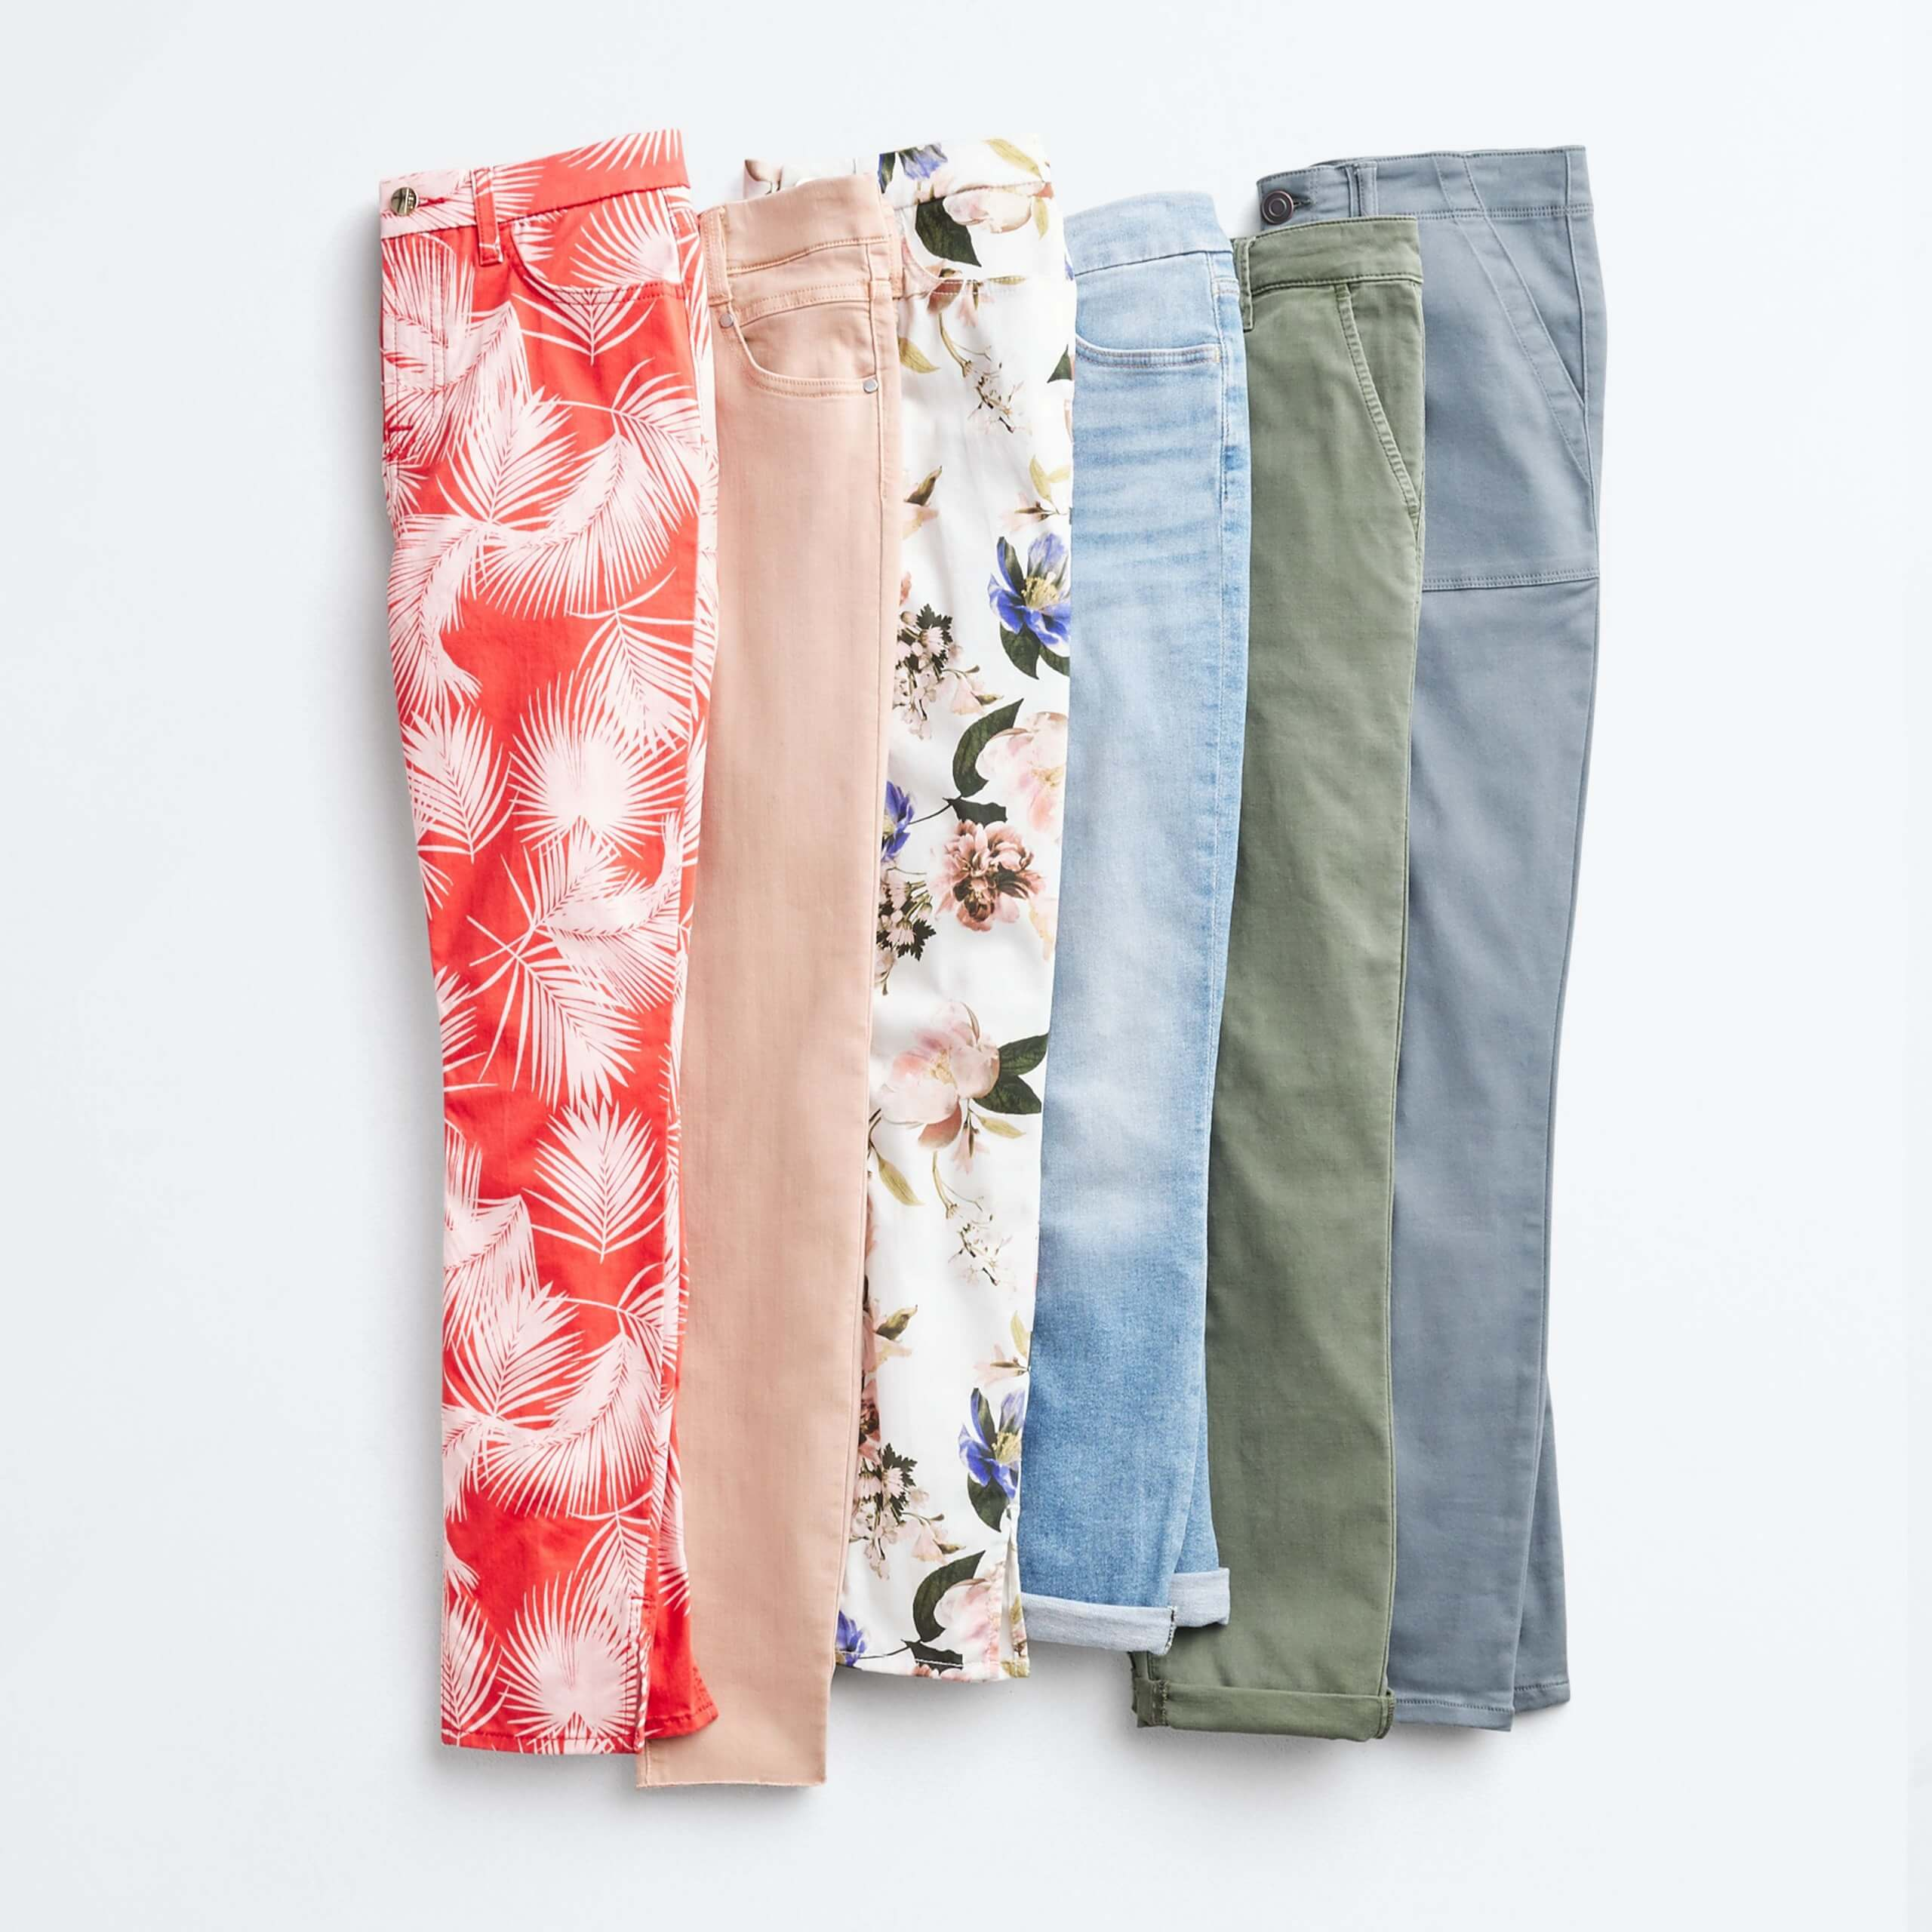 Stitch Fix Women's outfit laydown of skinny jeans in orange tropical print, blush pink, white floral, light blue, olive green and light blue.